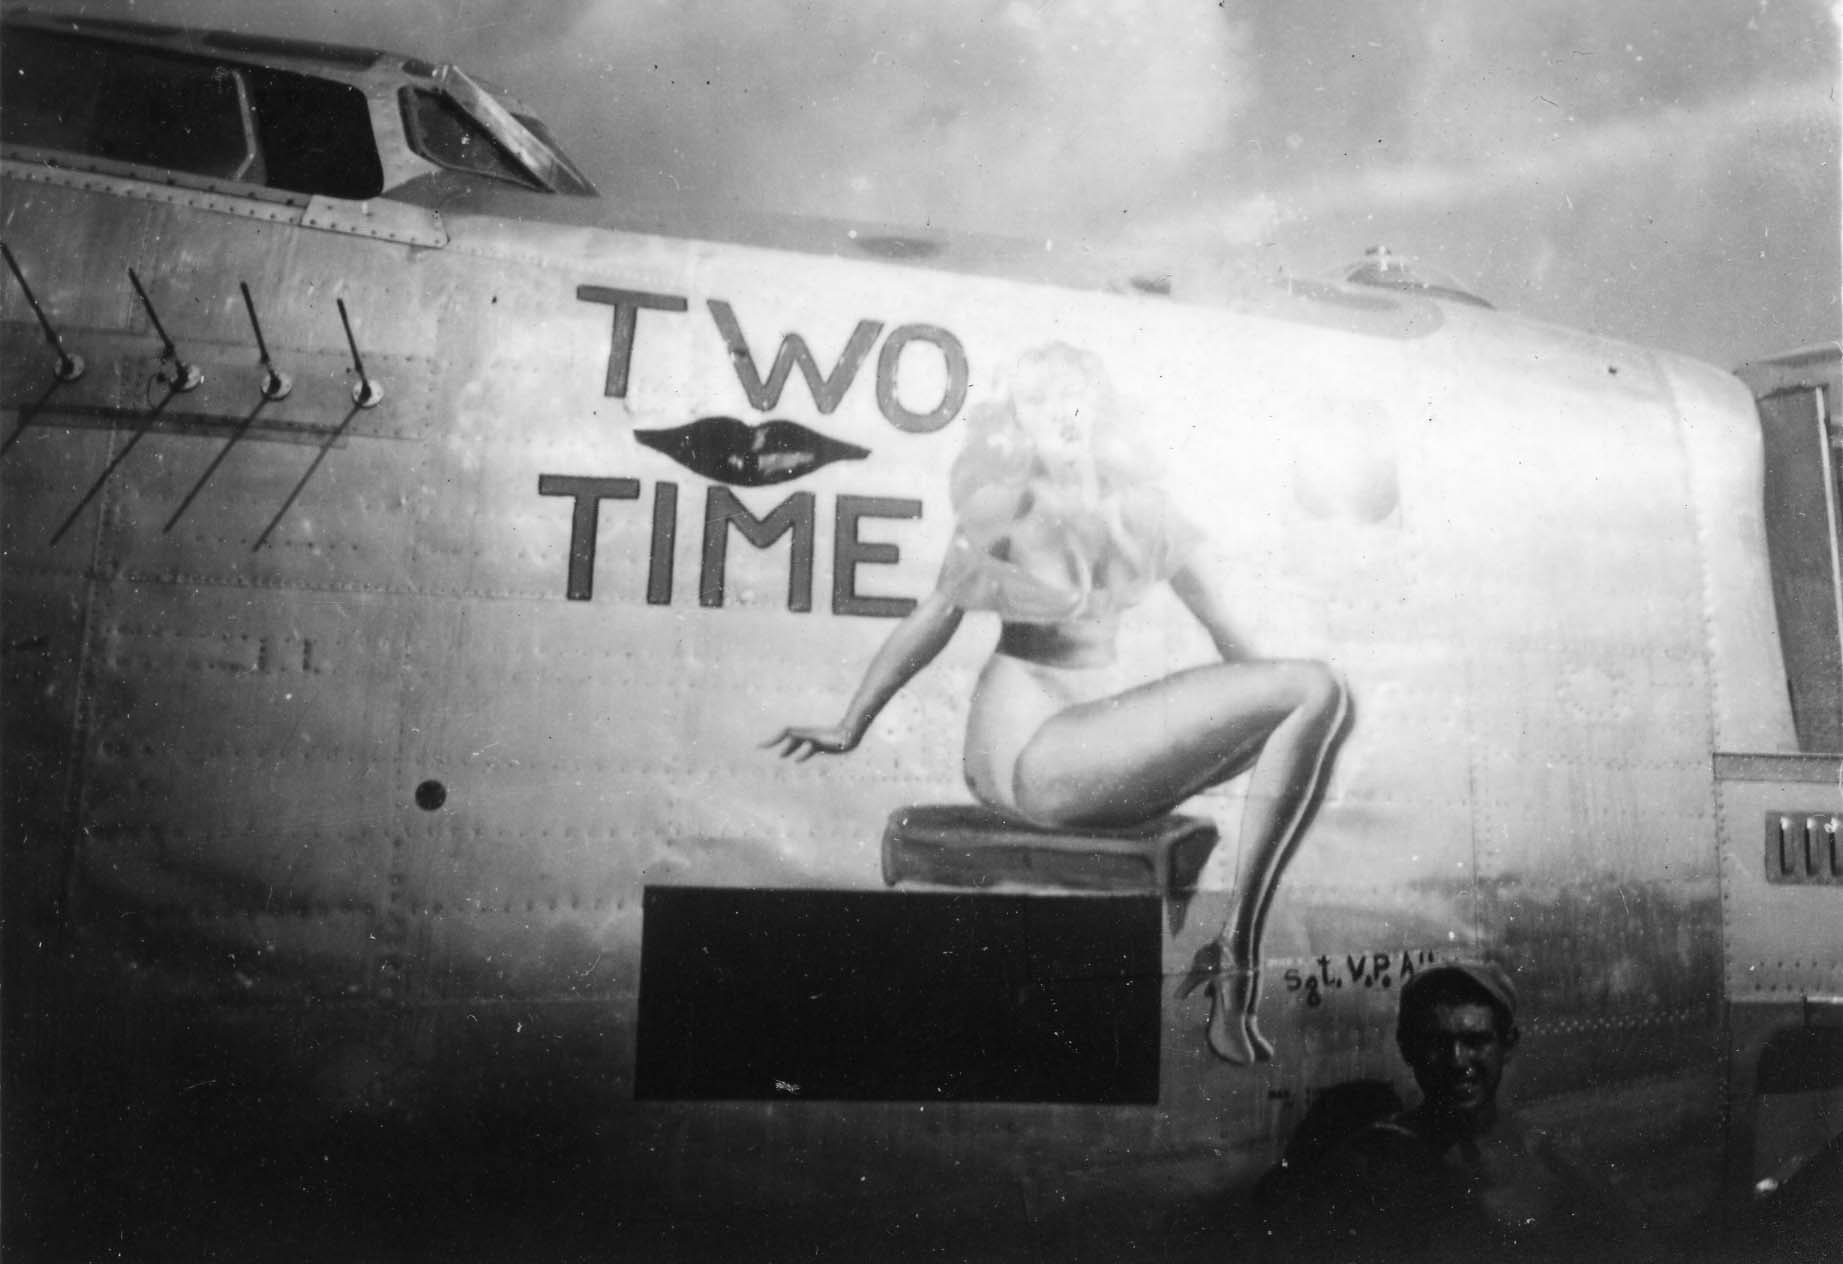 Two Time - B24 - 13th A.F. - 5th Bomb Group - 72nd Bomb Squadron - Serial #44-40546 - Sharpe 28 (Thomas Sharpe Collection)